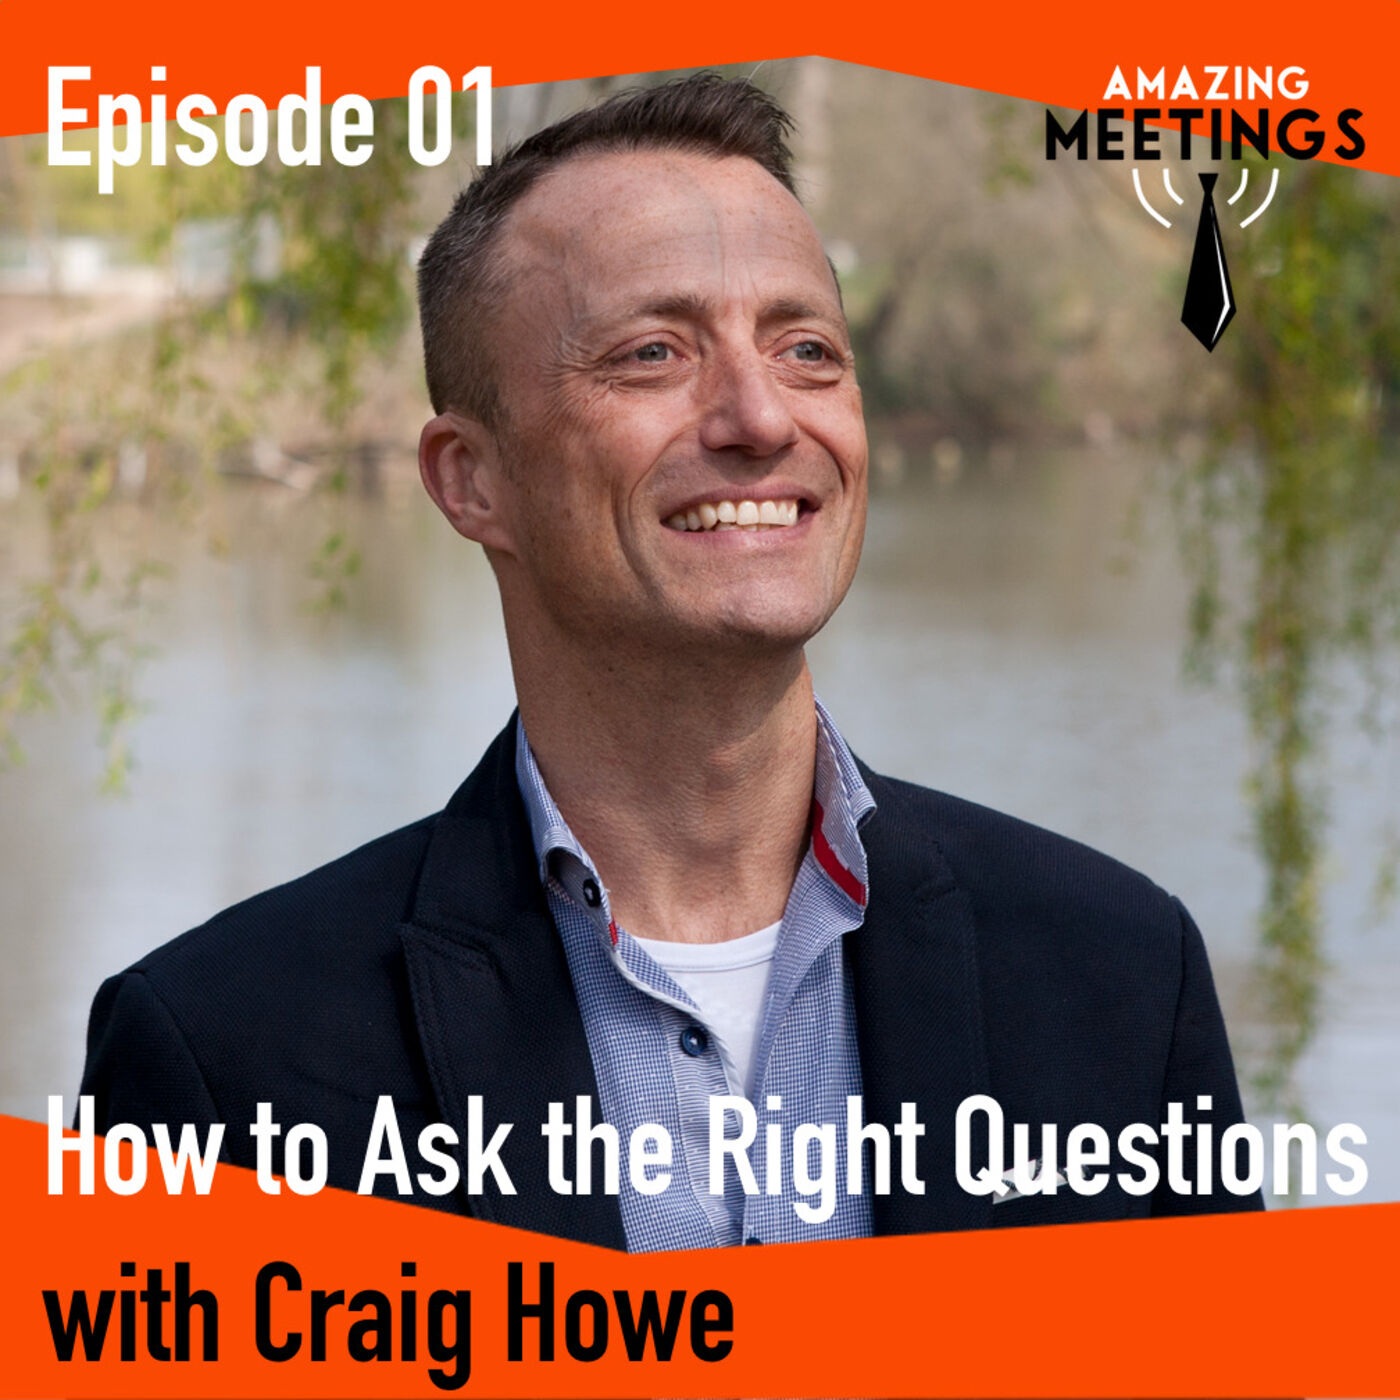 How to Ask the Right Questions with Craig Howe